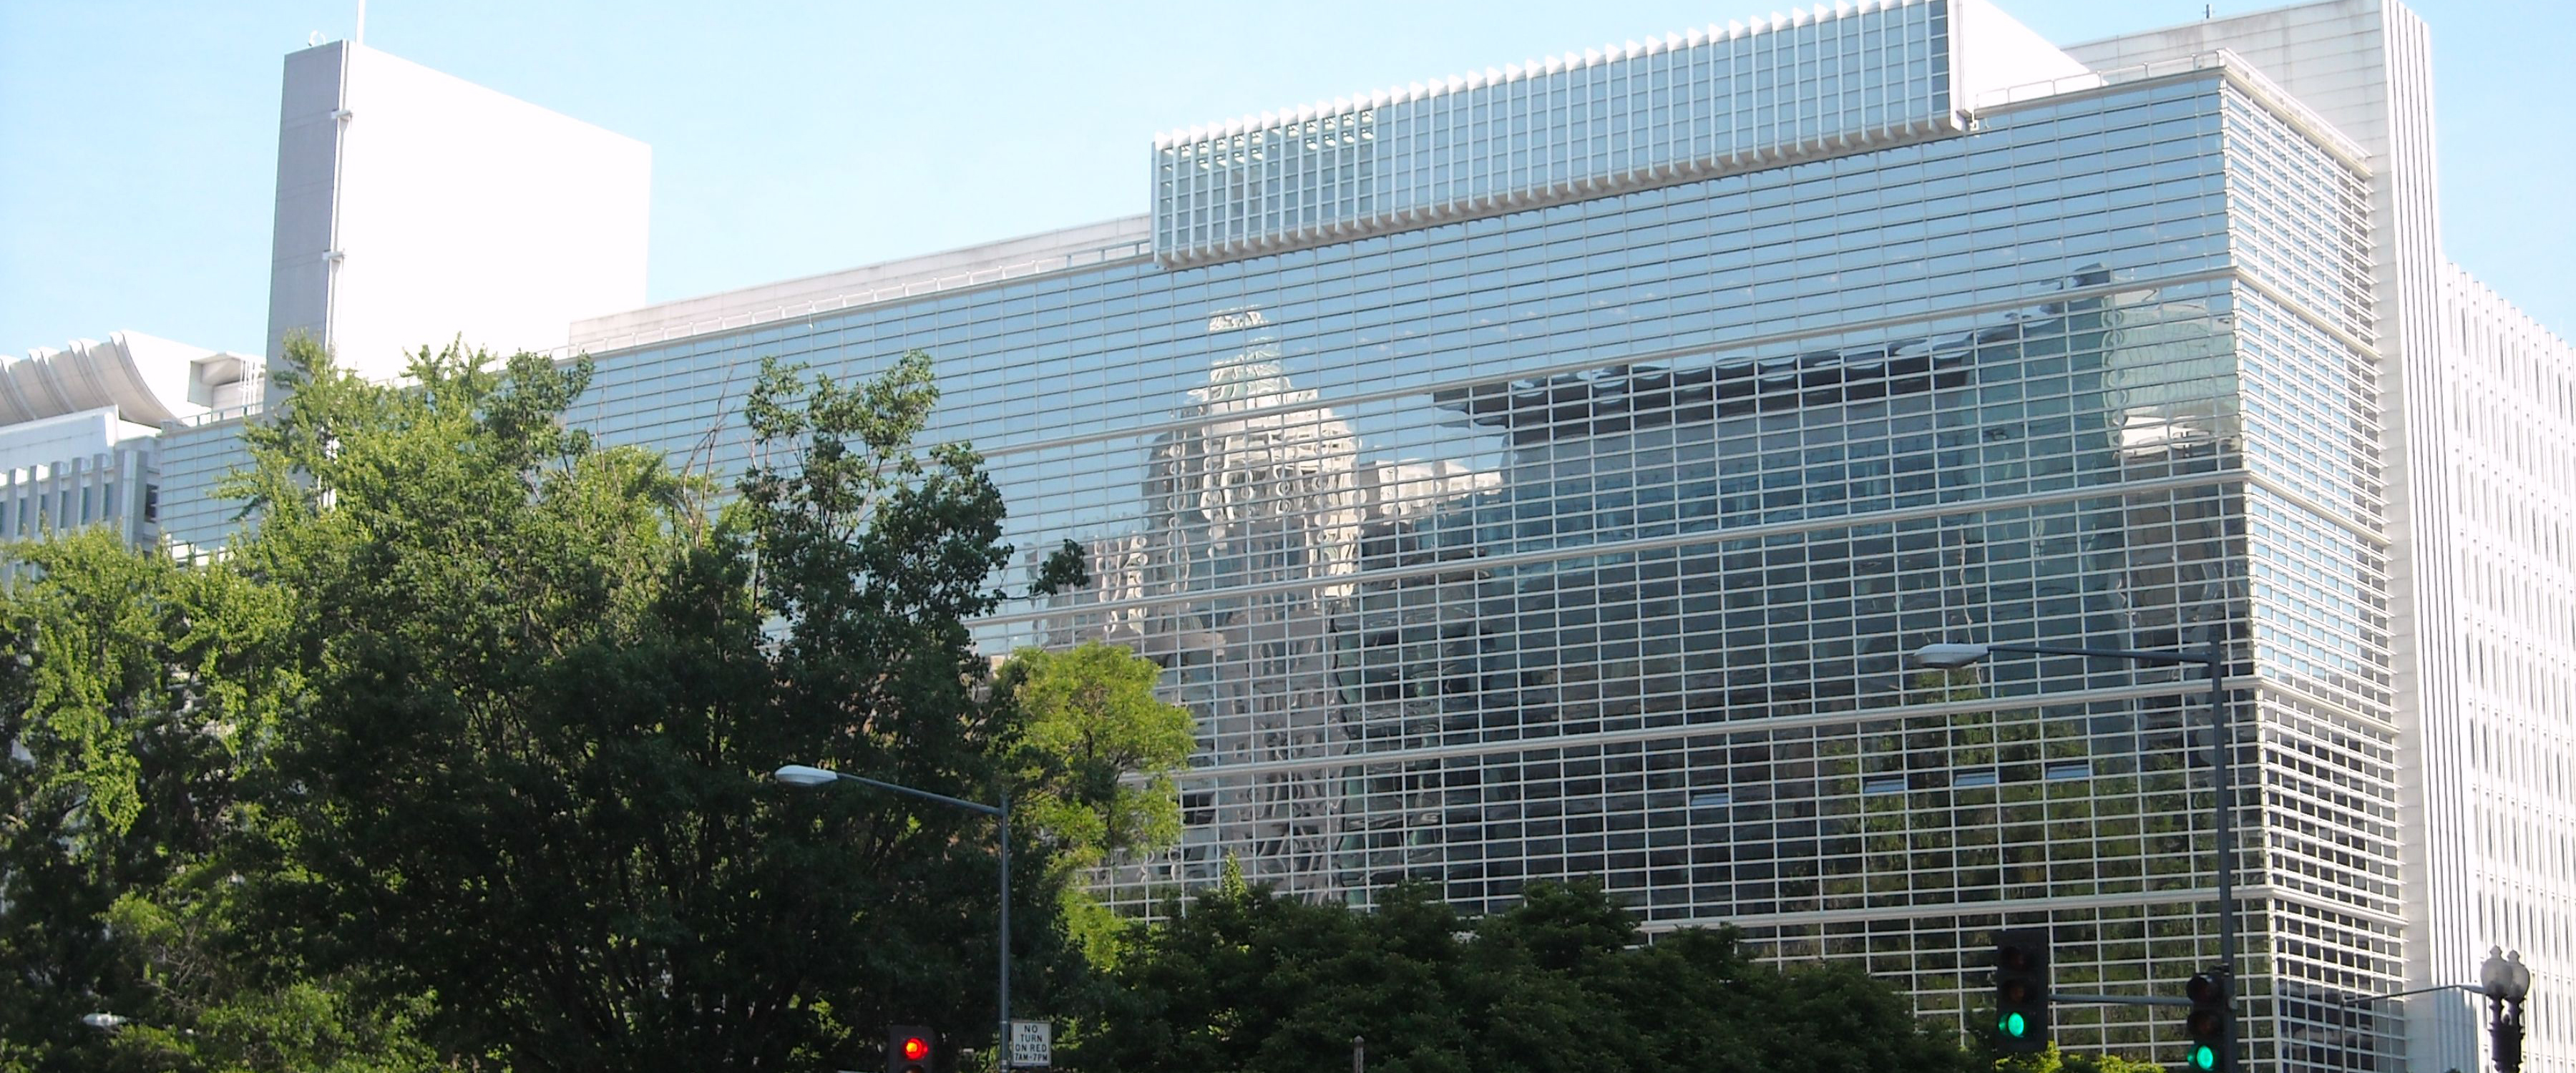 The World Bank Group headquarters buildings in Washington, D.C